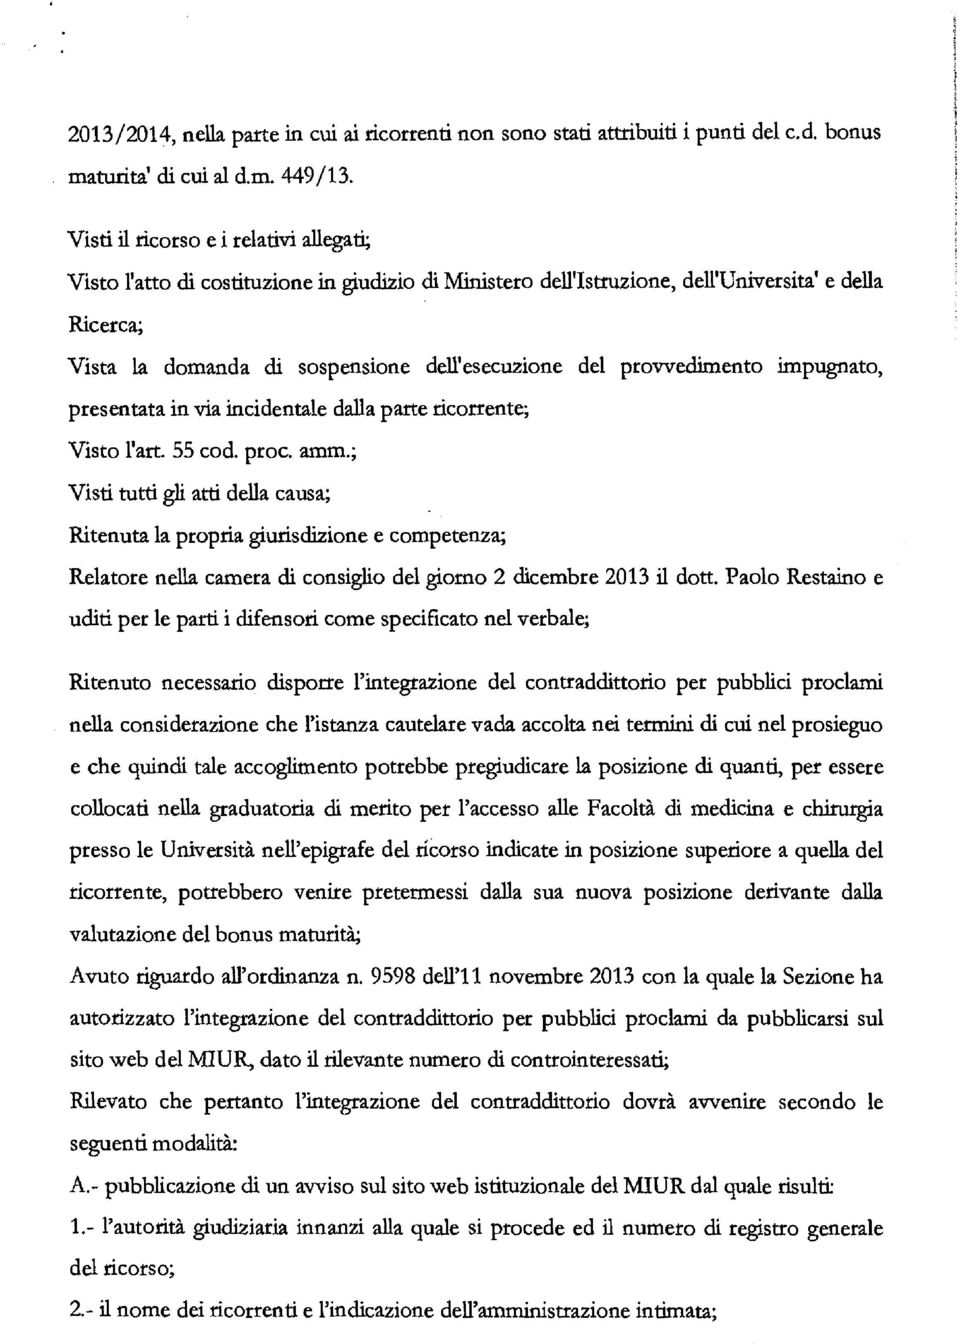 provvedimento impugnato, presentata in via incidentale dalla parte ricorrente; Visto l'art. 55 cod. proc. amm.